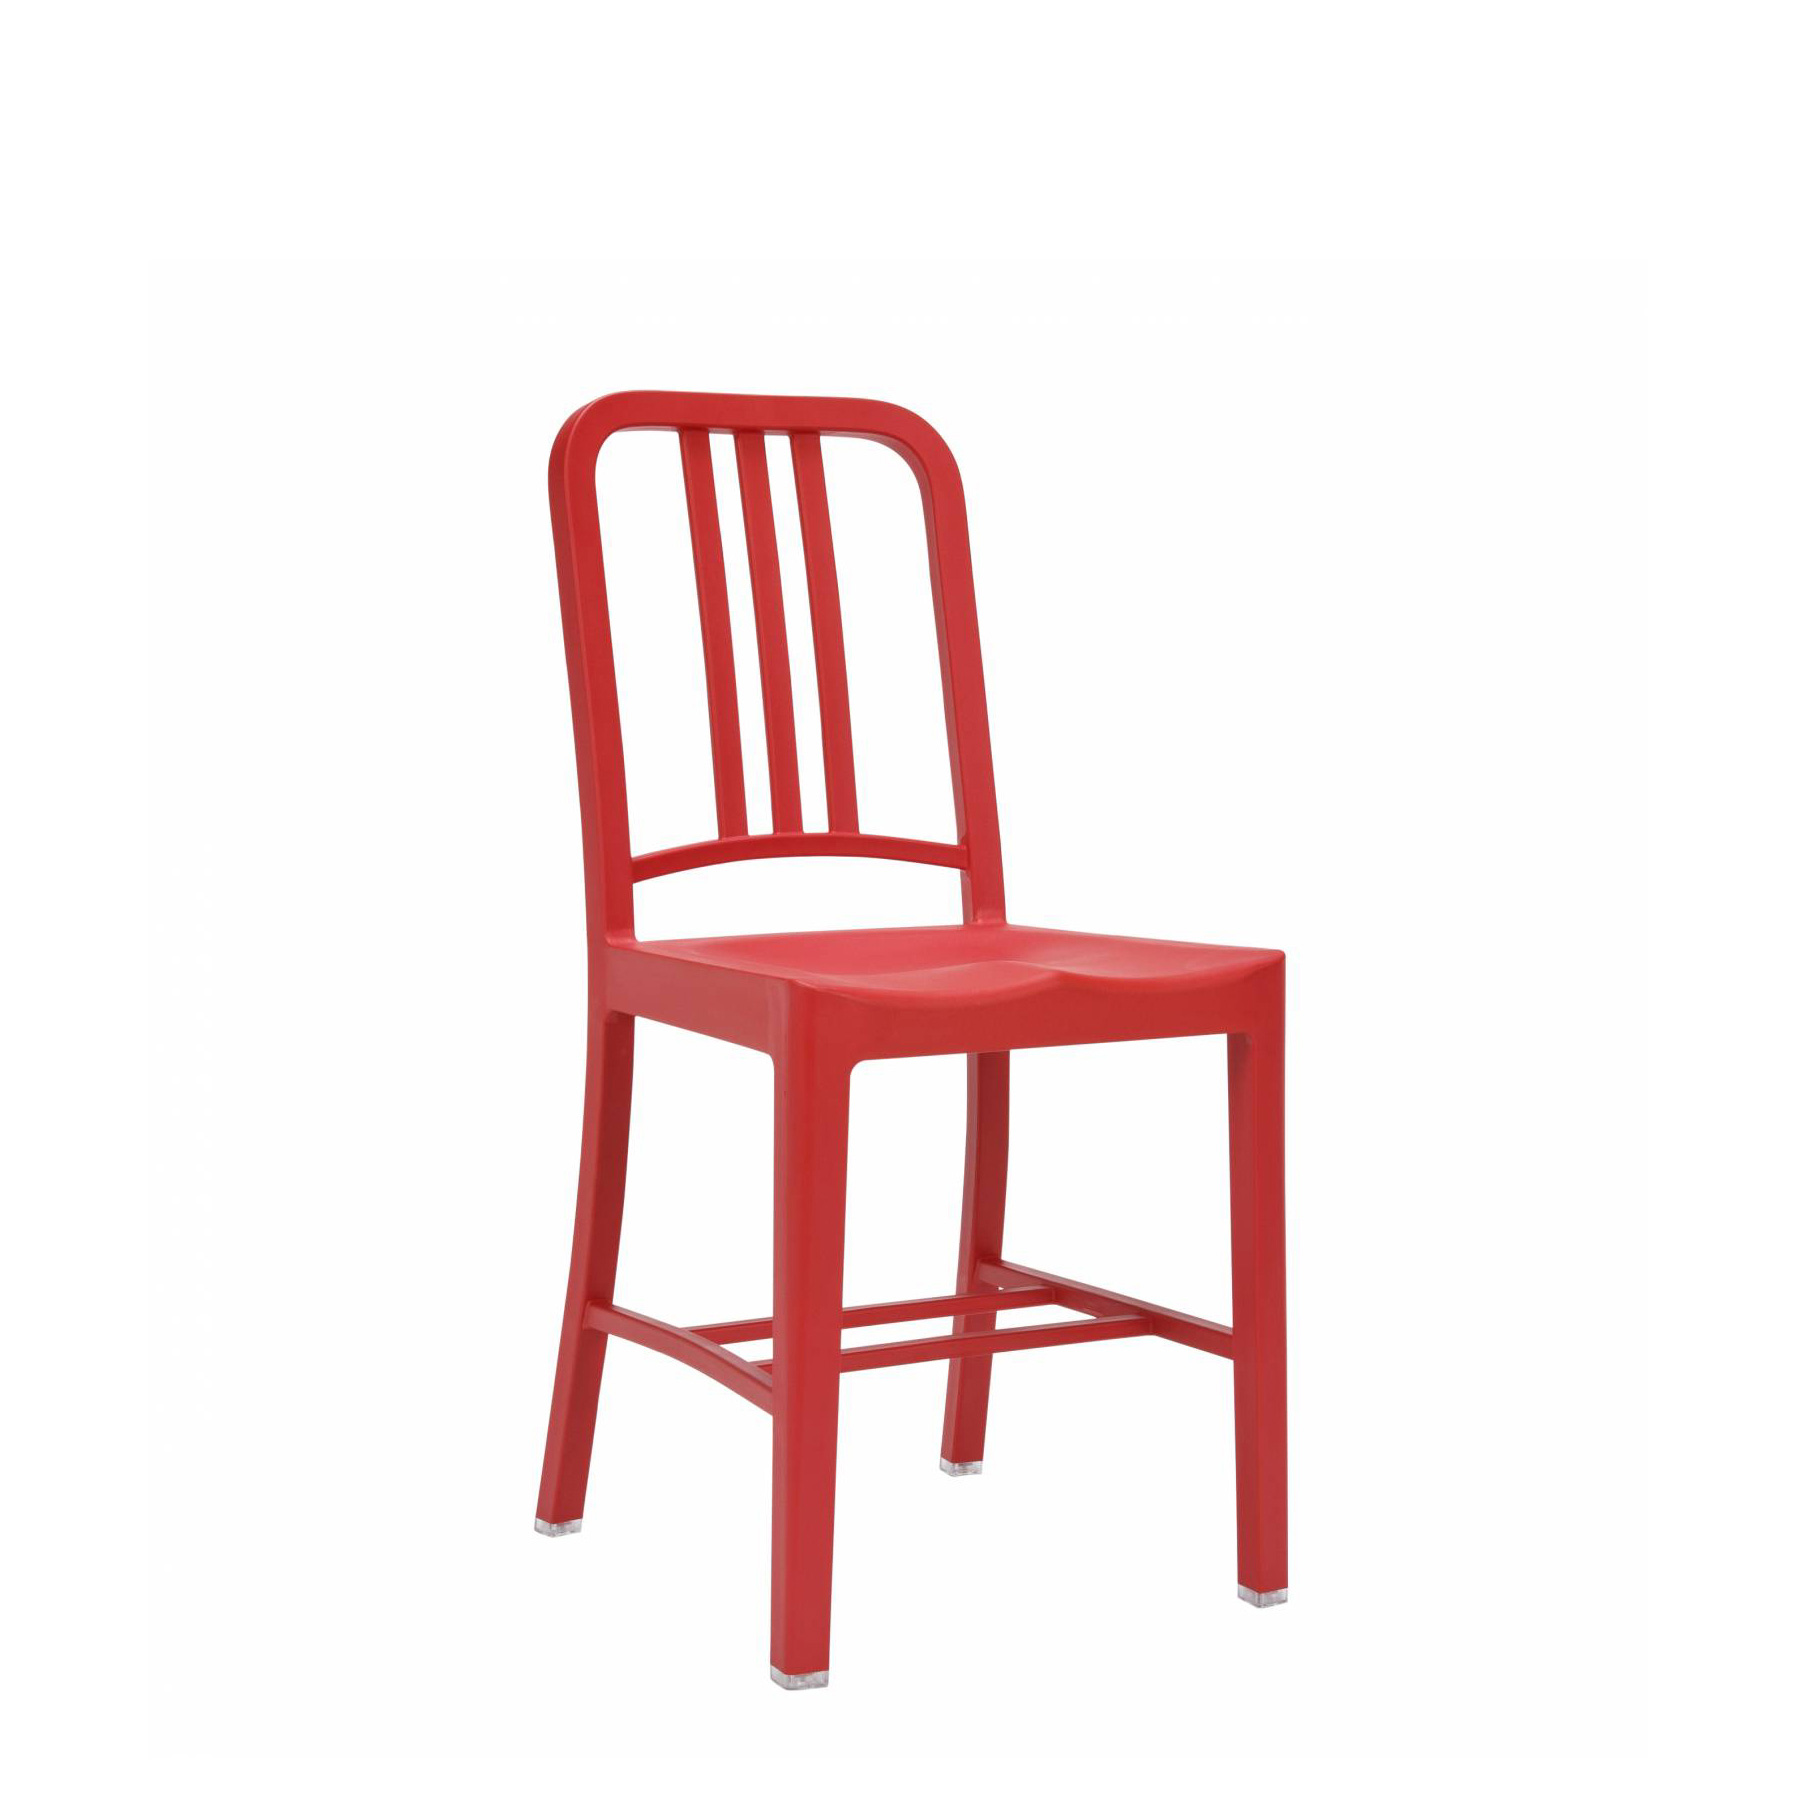 111 Navy Chair Coca Cola Made from 111 Recycled Plastic Bottles